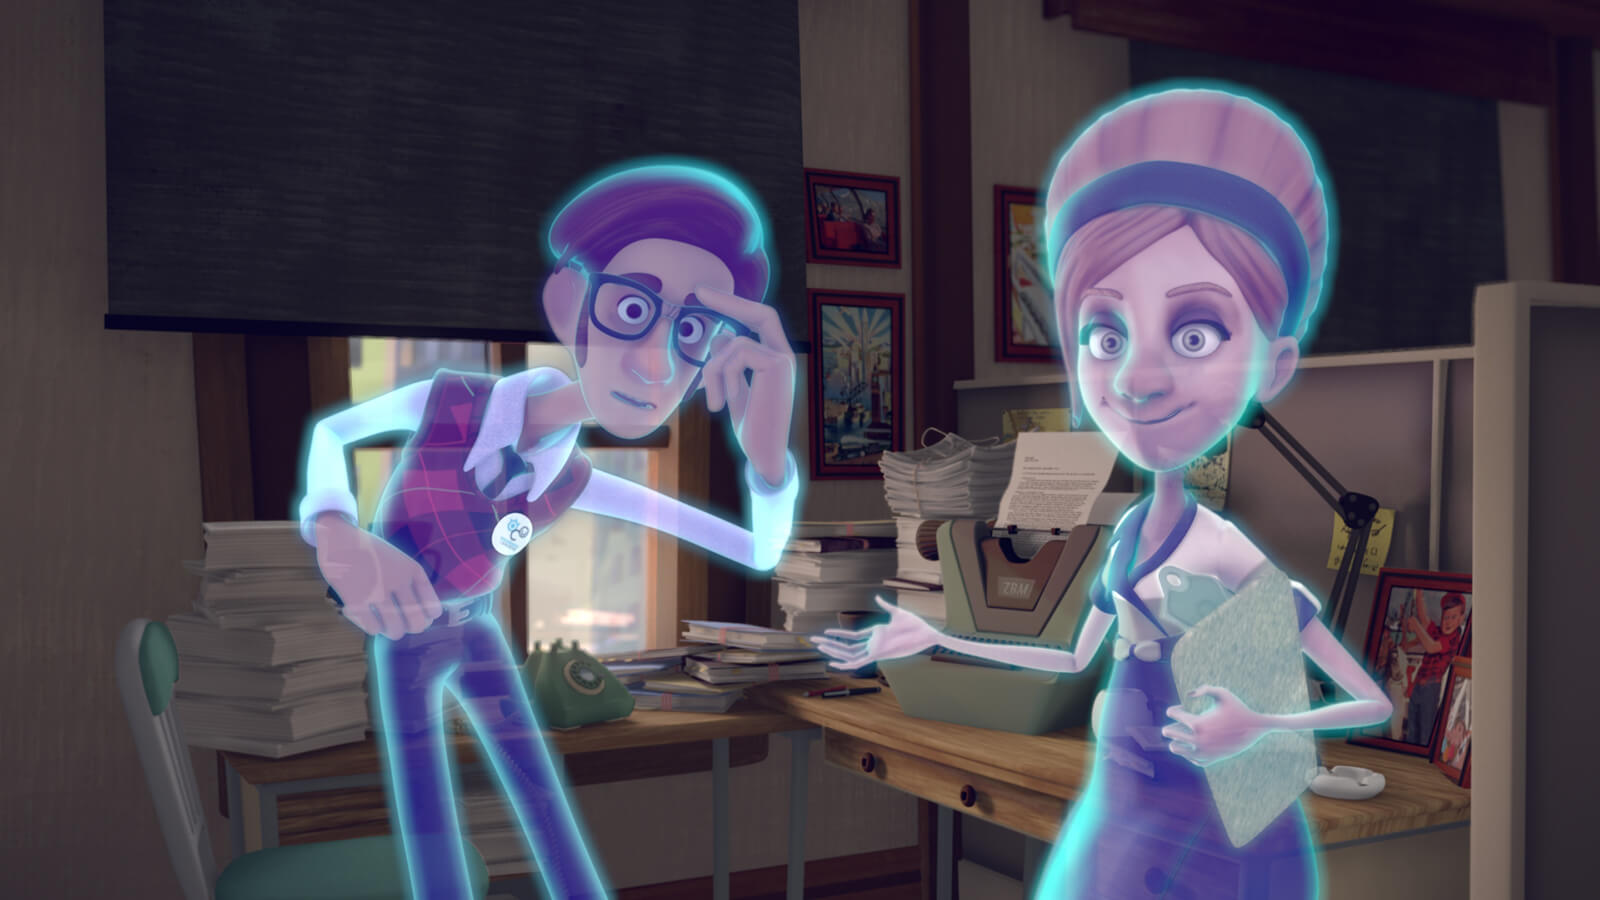 A translucent, glowing blue man and another spectral woman holding a clipboard stare directly at the viewer.